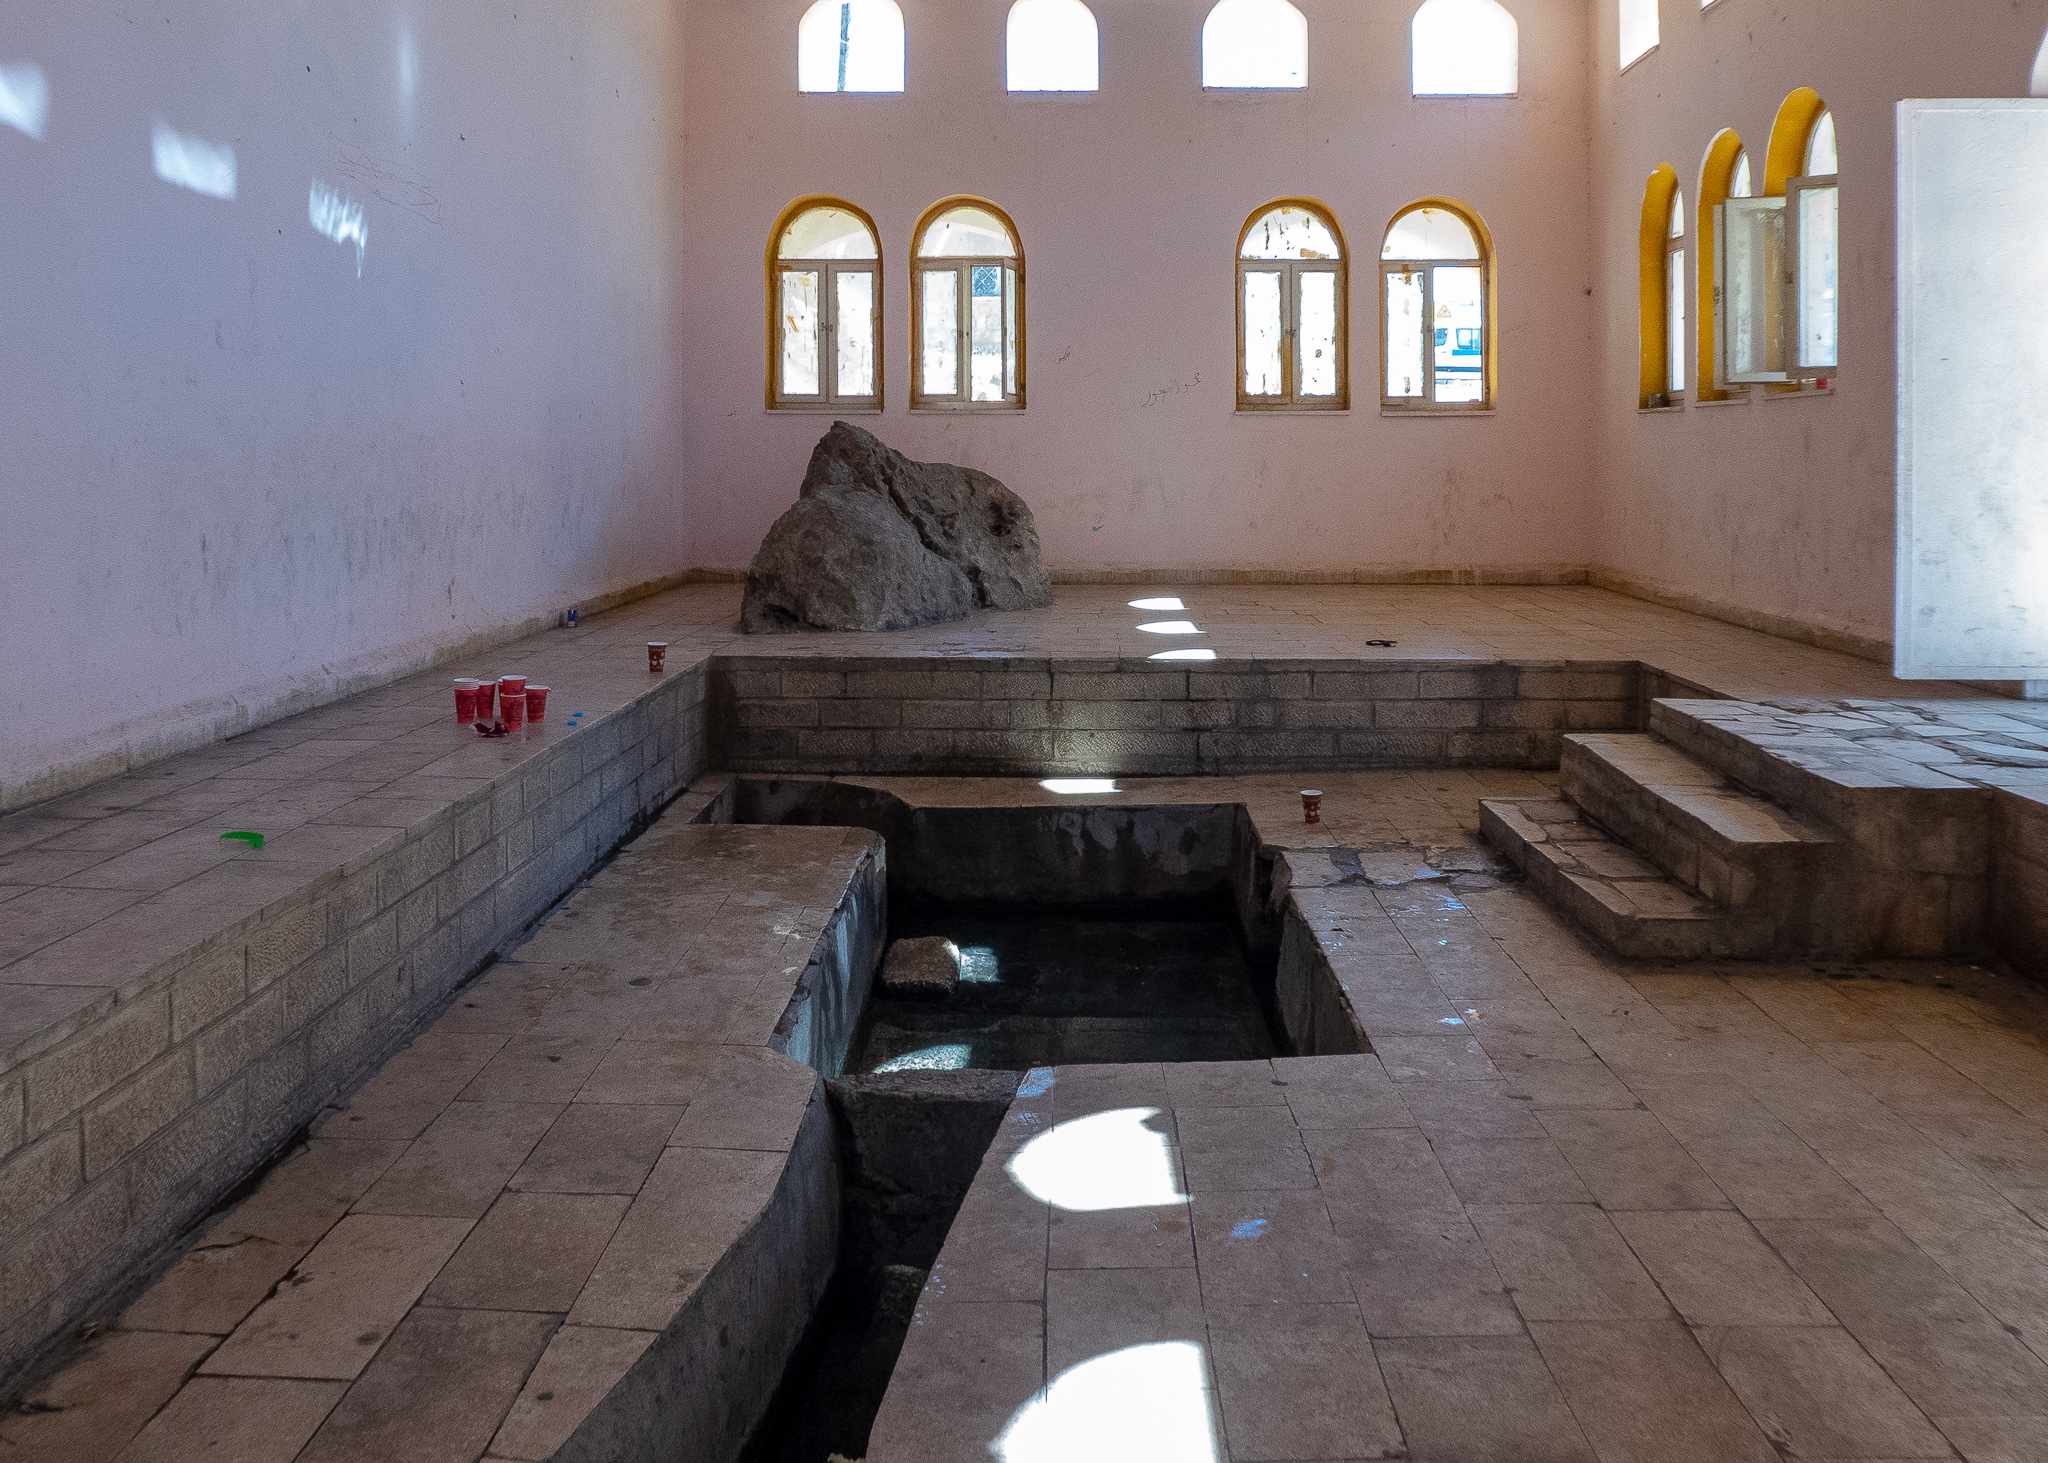 Water still flows inside and I'm guessing that rock is symbolic, rather than being the one Moses struck